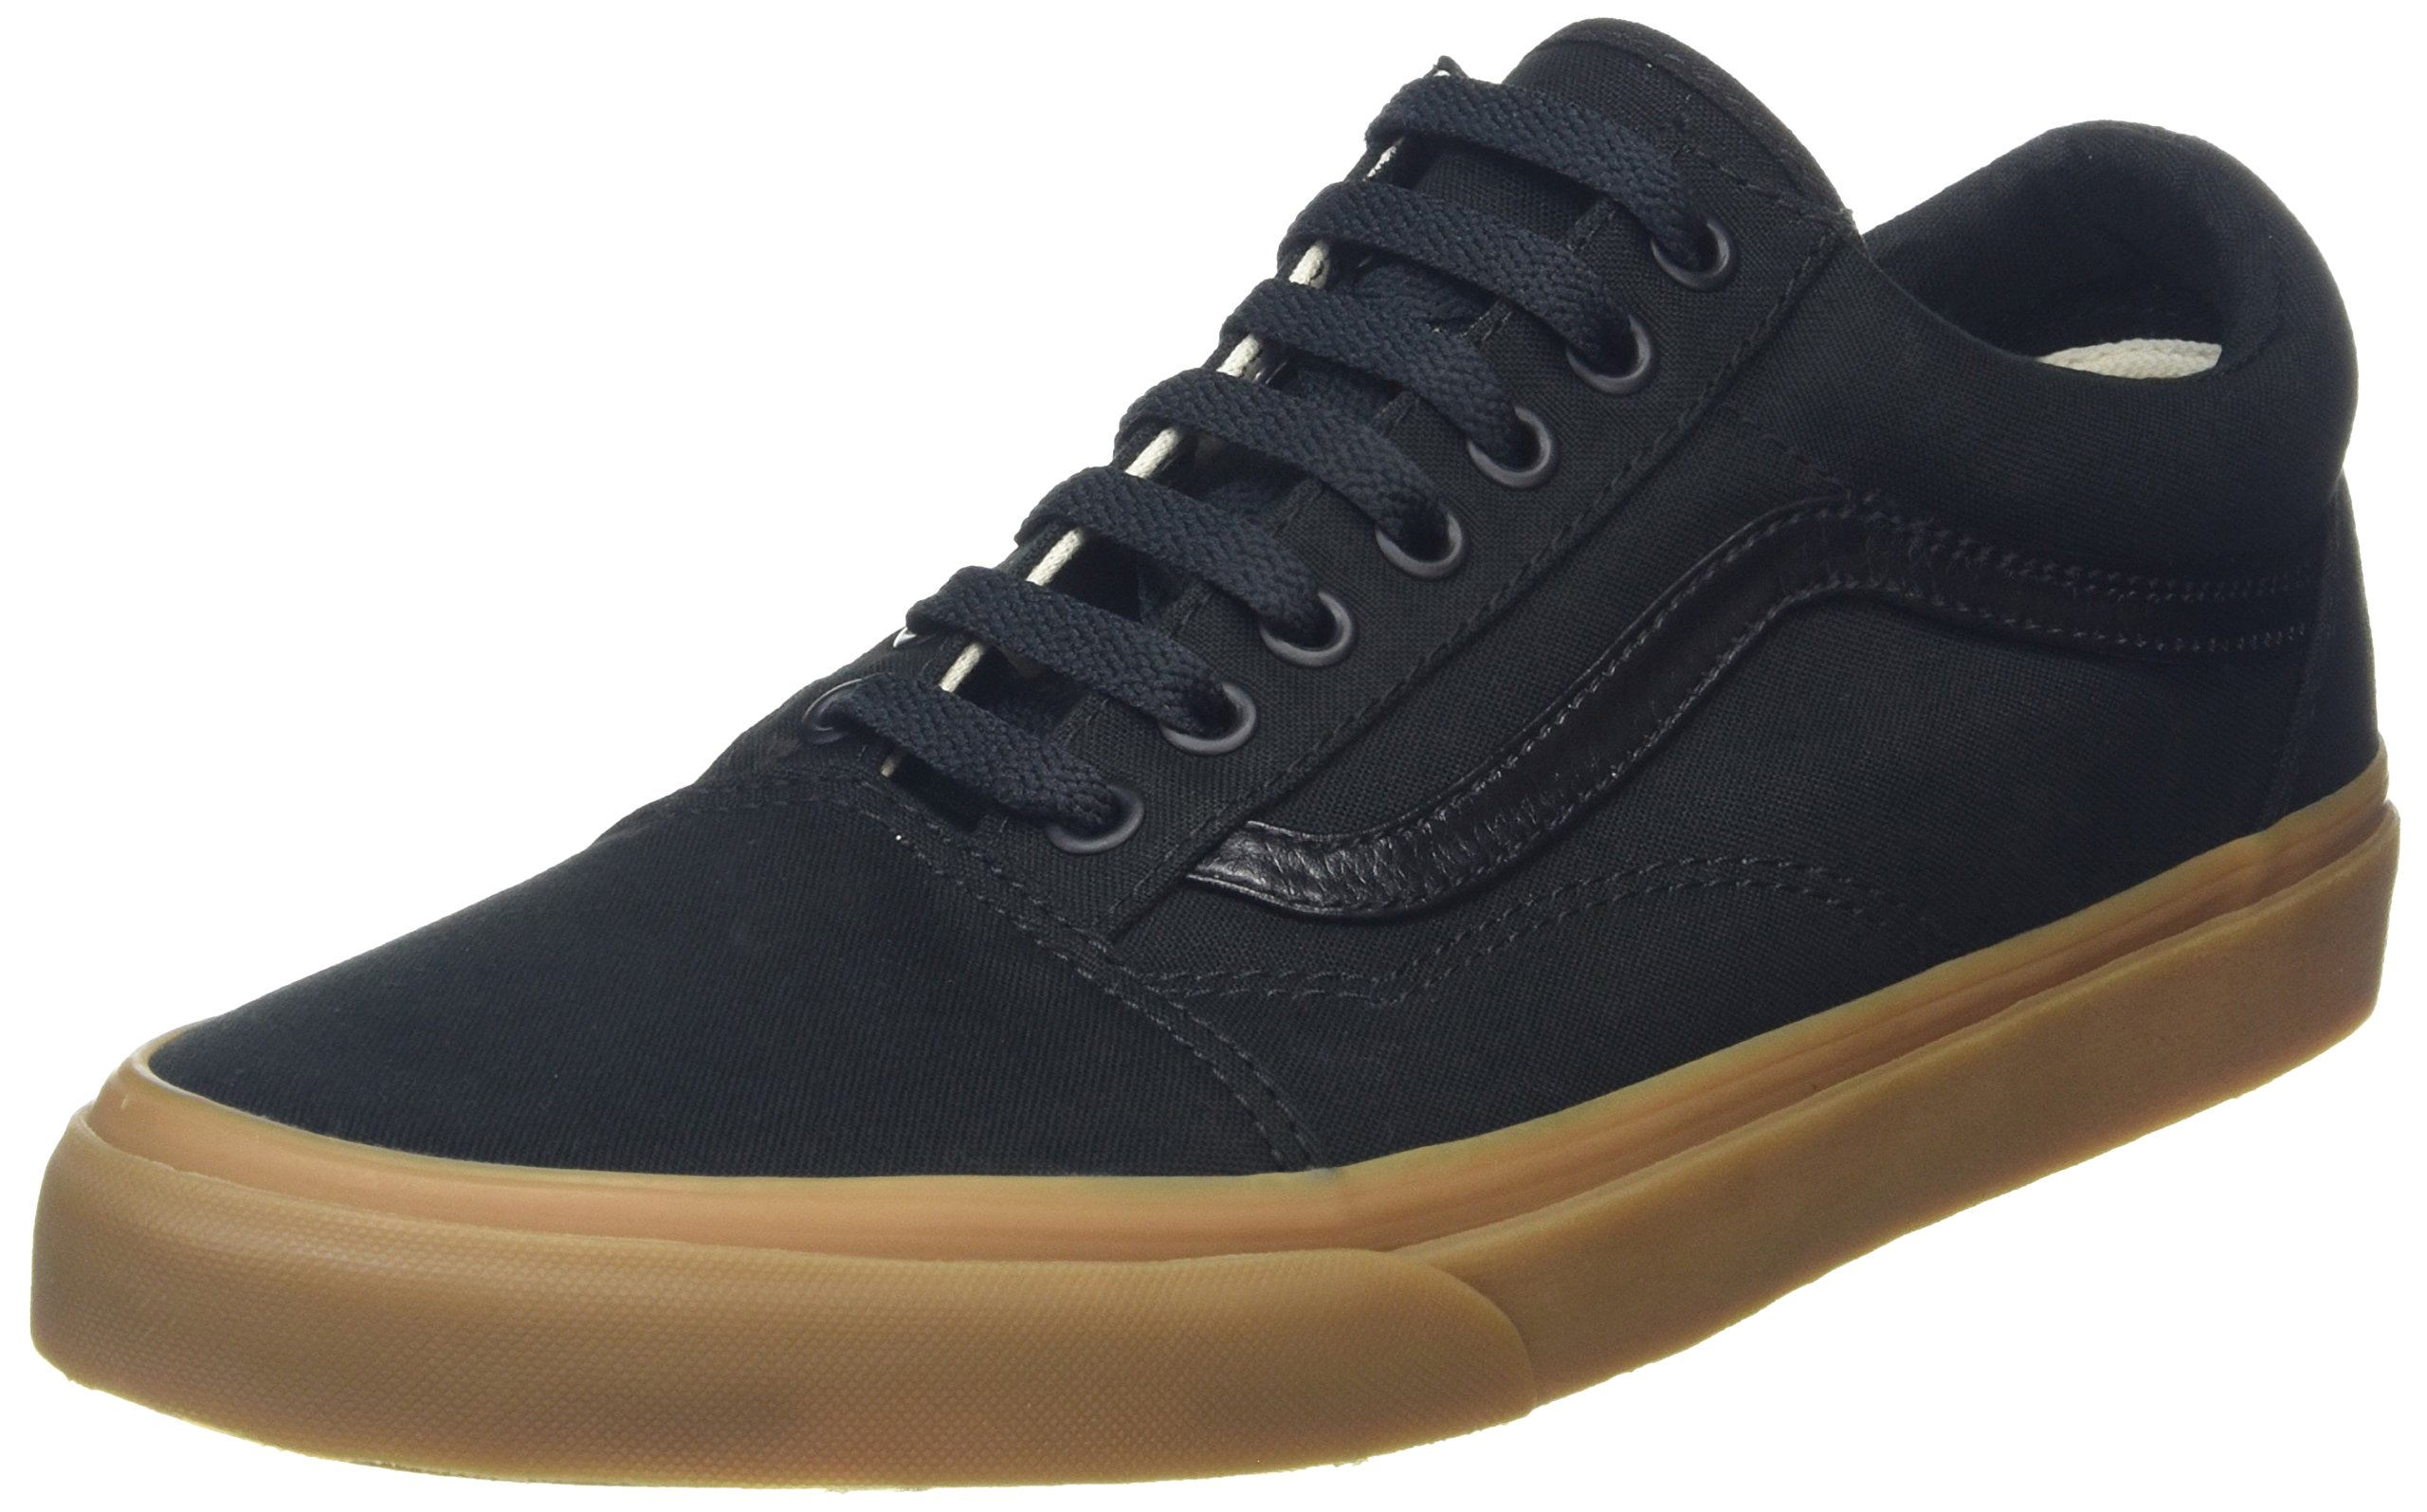 Galleon - Vans Unisex Old Skool (Canvas Gum) Black LghtGm Skate Shoe 10 Men  US 11.5 Women US 06e3efe6e